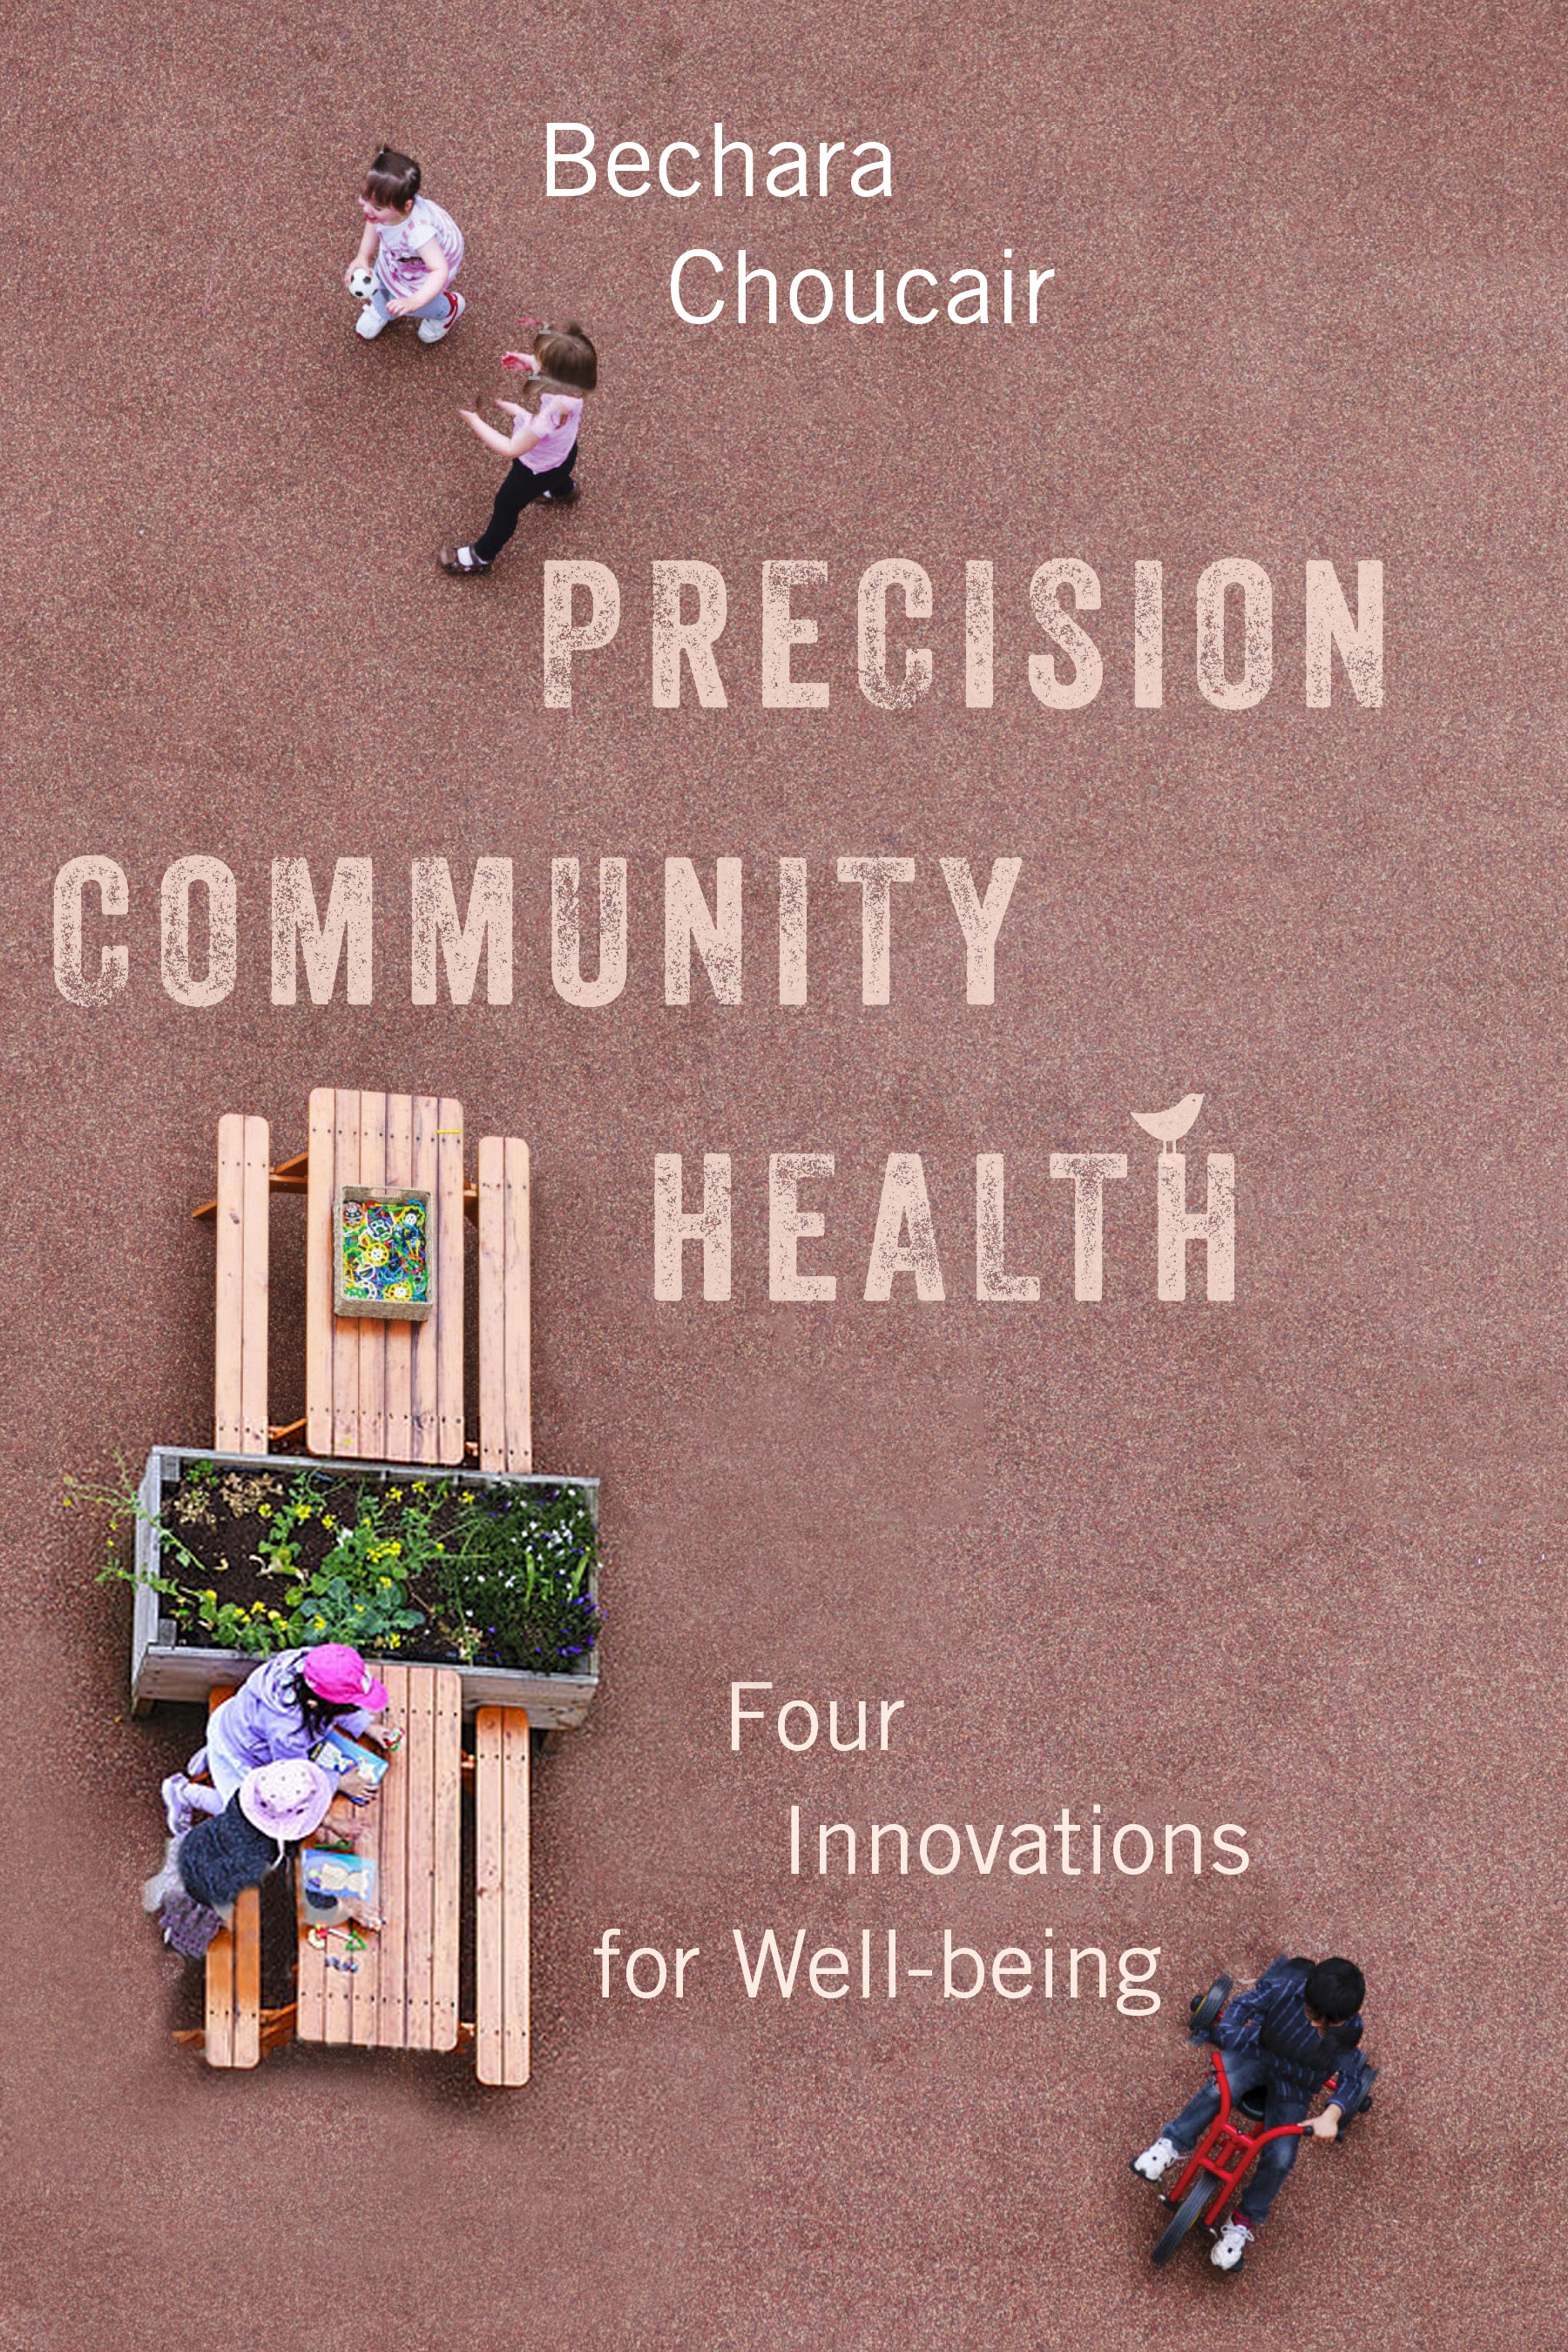 [PDF] [EPUB] Precision Community Health: Four Innovations for Well-being Download by Bechara Choucair